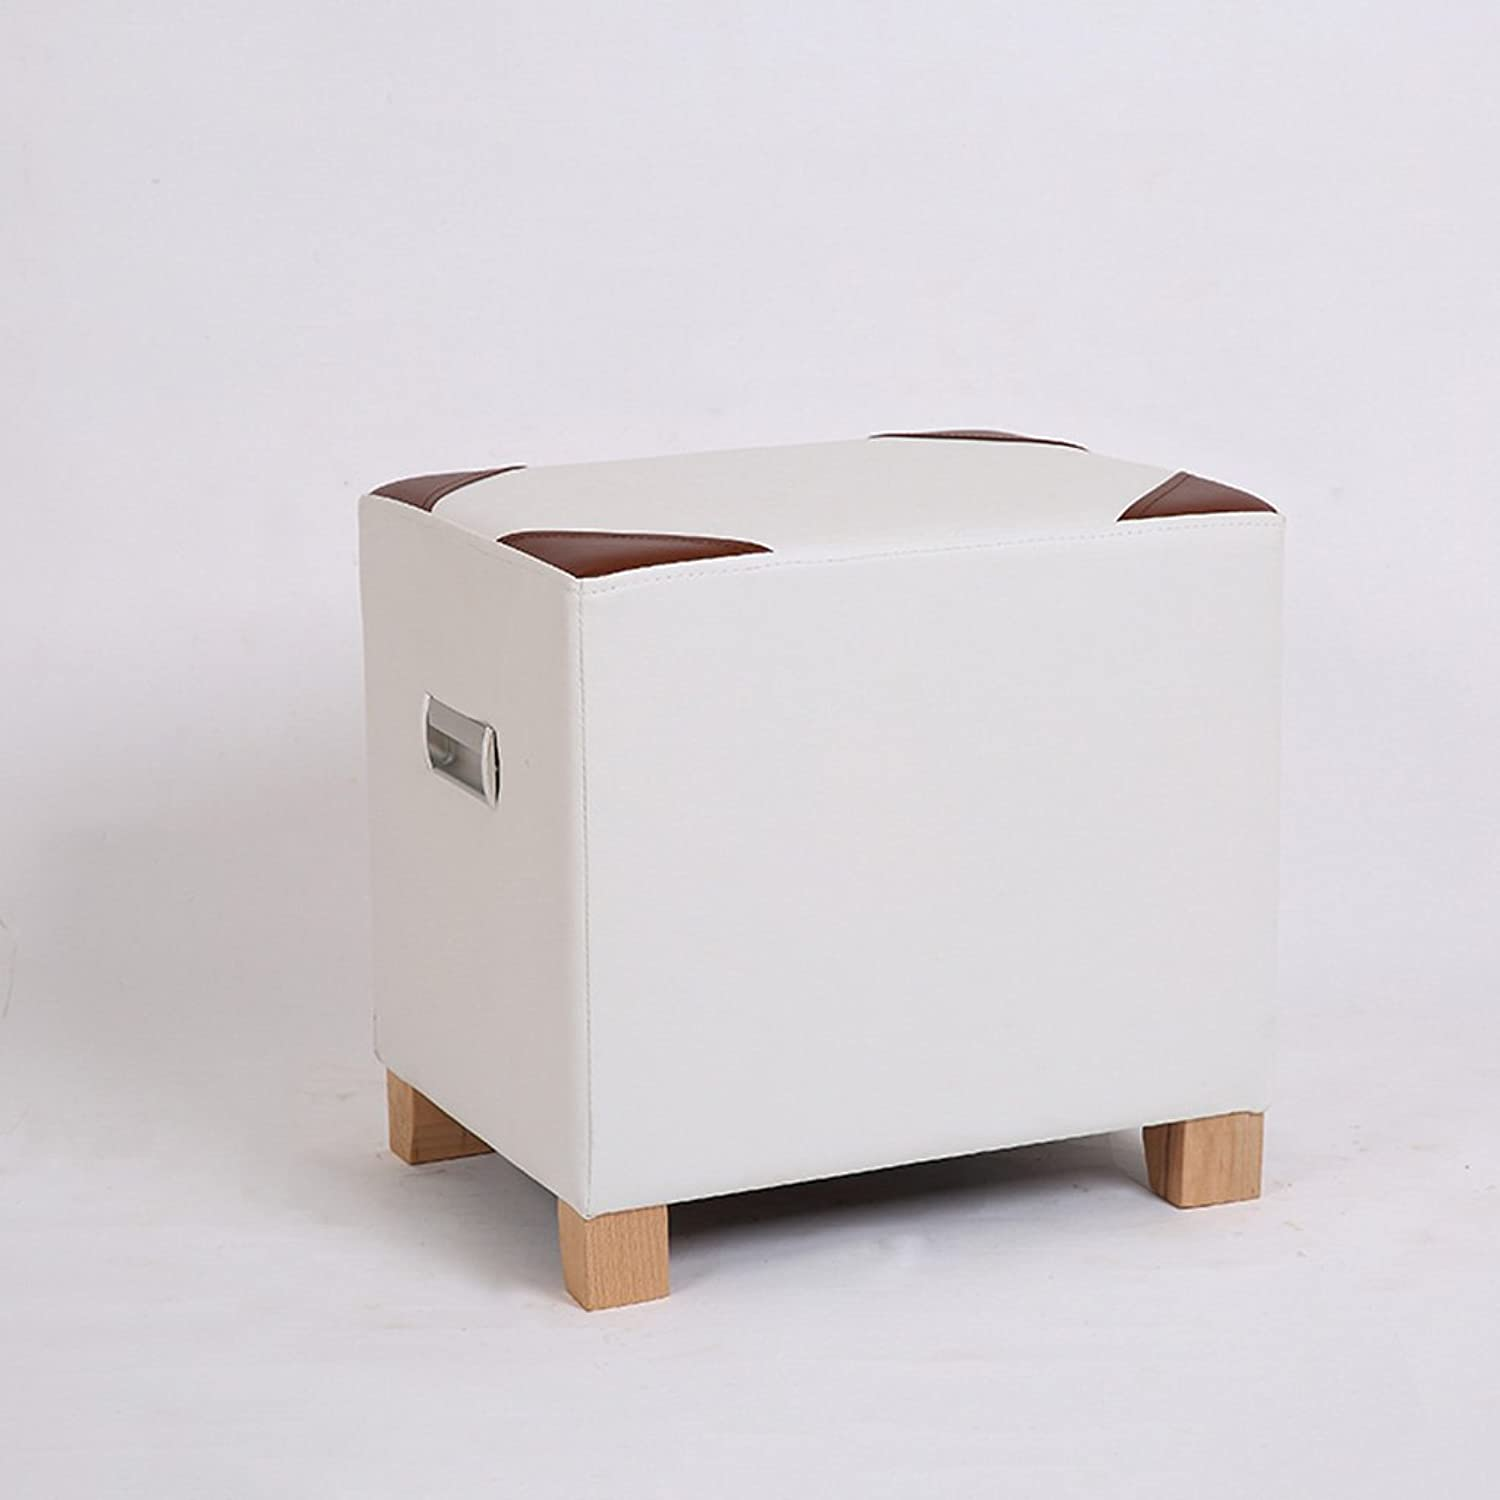 Modern Minimalist Style Solid Wood Square Stools, Creative Leather Stools, Den Living Room Bedroom Stools, Footstool, shoes Bench, Sofa Stool, Coffee Table Stool, Home Bench, 40  30  40cm